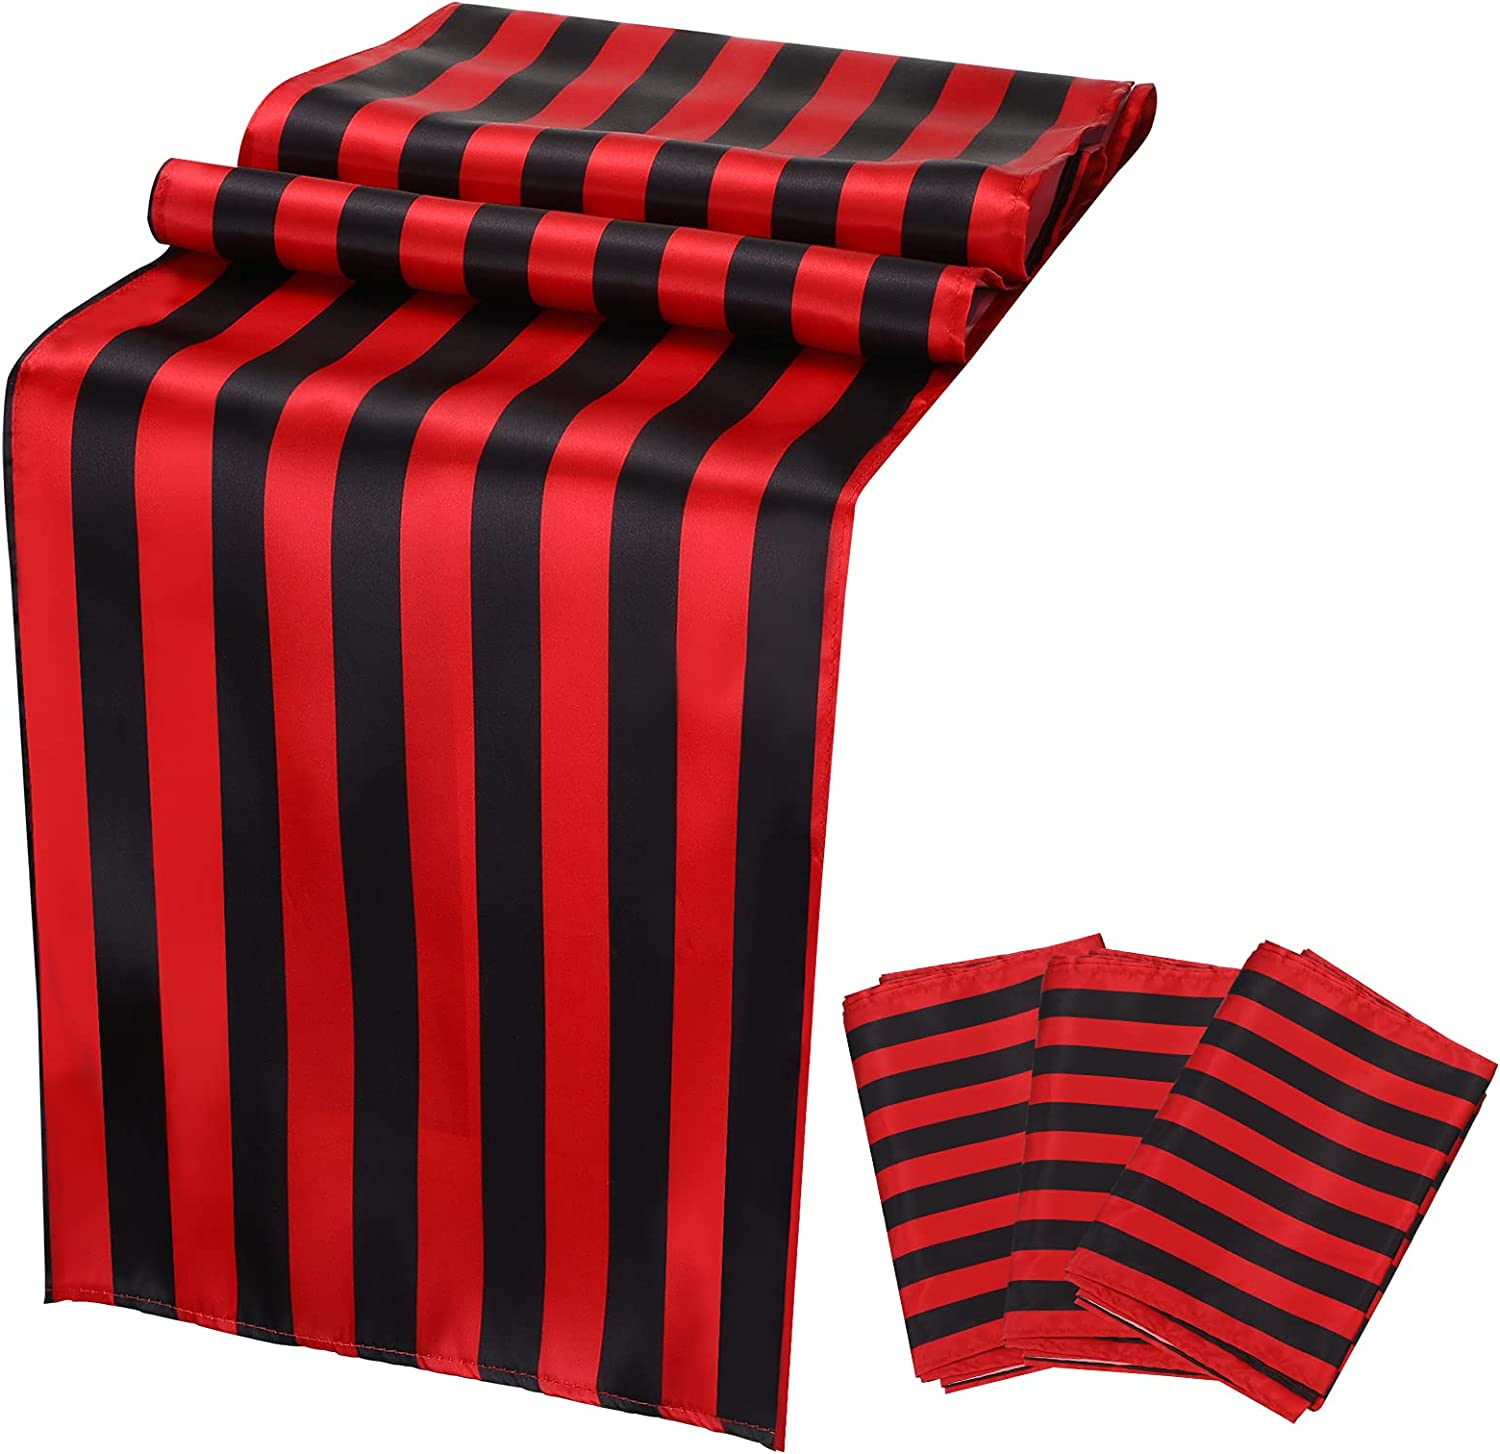 Striped Table Runner 4 Pieces Black and Red Table Decor Polyester Striped Tablecloth Classic Washable Runner for Indoor Outdoor Christmas Home Kitchen Dining Table Party Decoration, 12 x 72 Inches